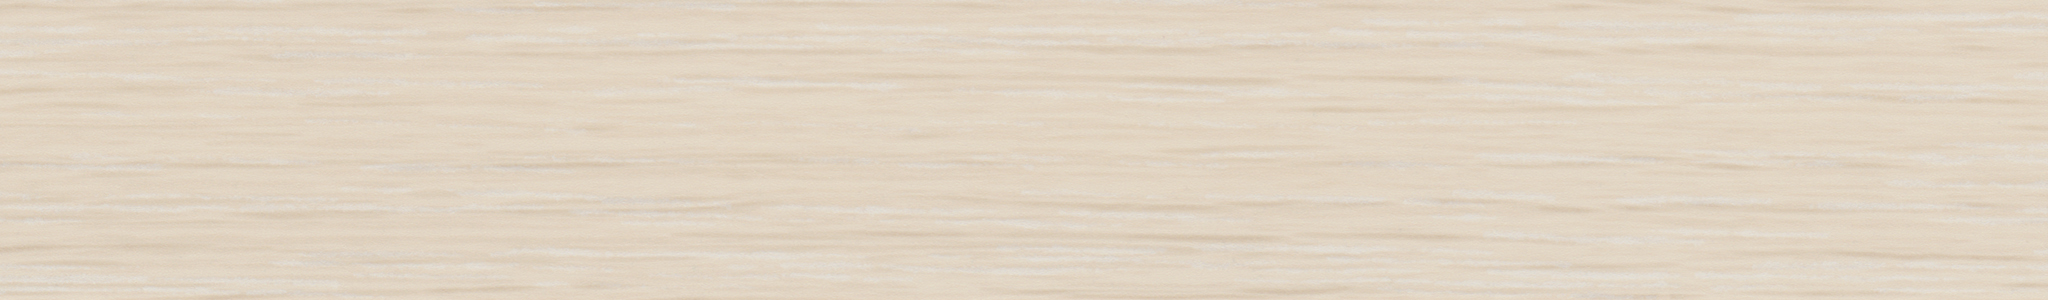 HD 24510 ABS Edge Bleached Oak Smooth